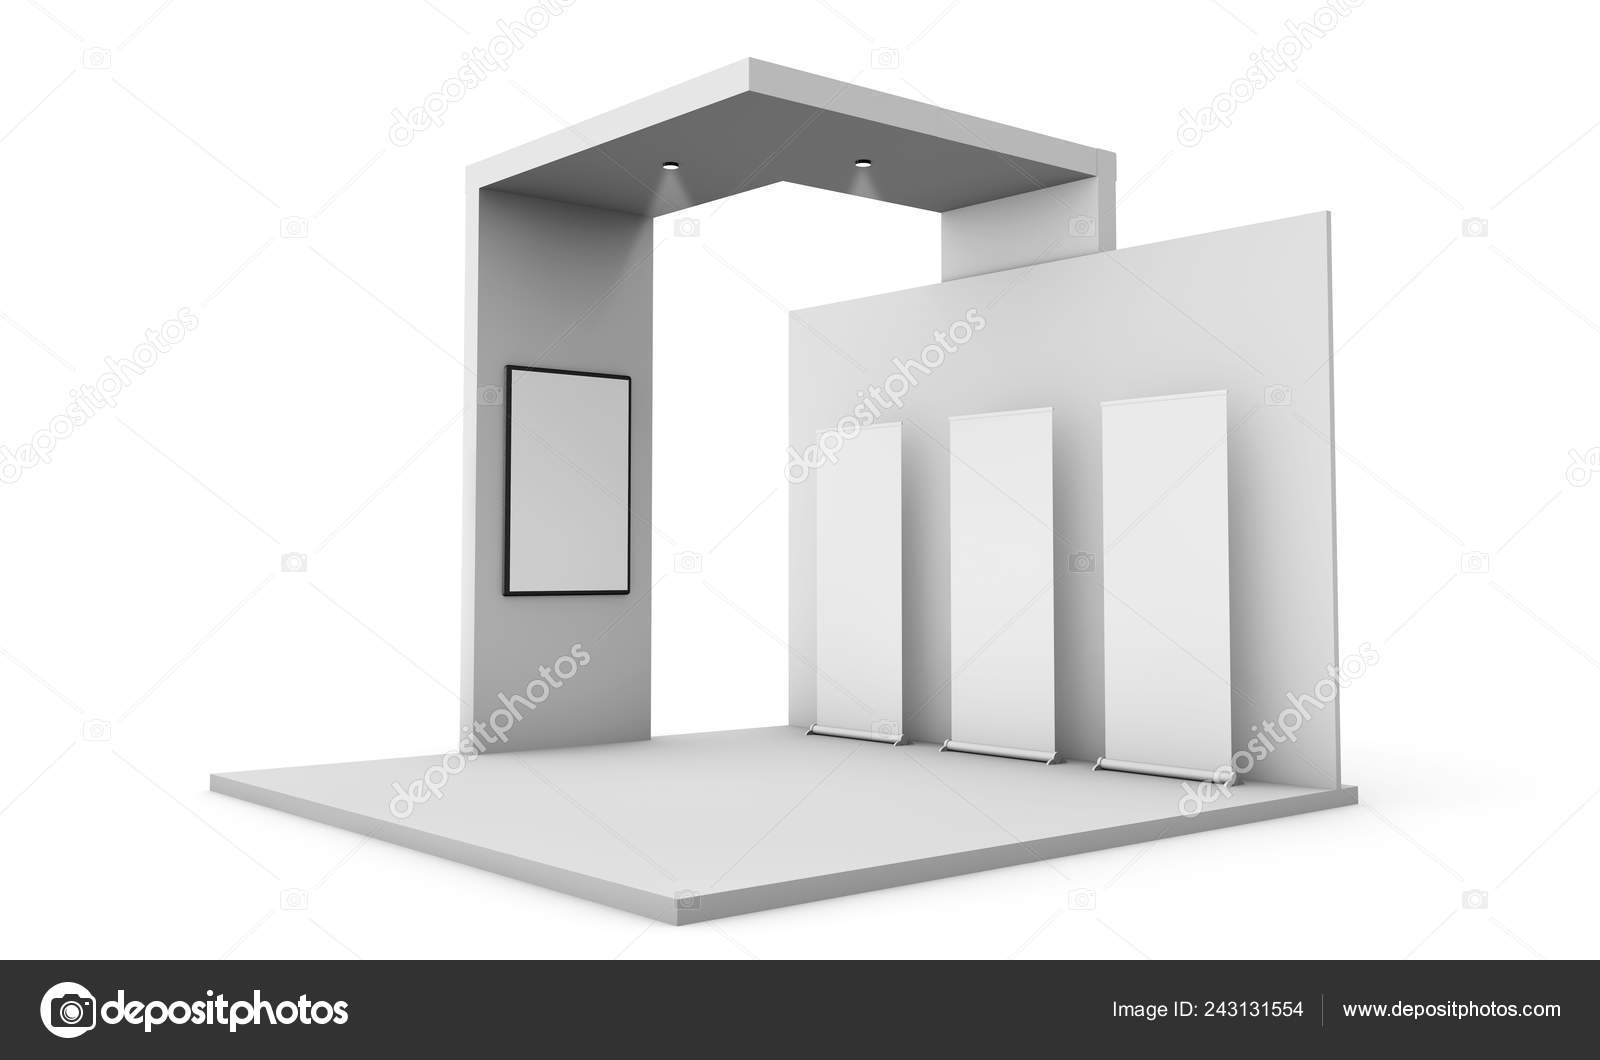 Exhibition Stall Mockup : Three roller poster mockup exhibition stand rendering isolated